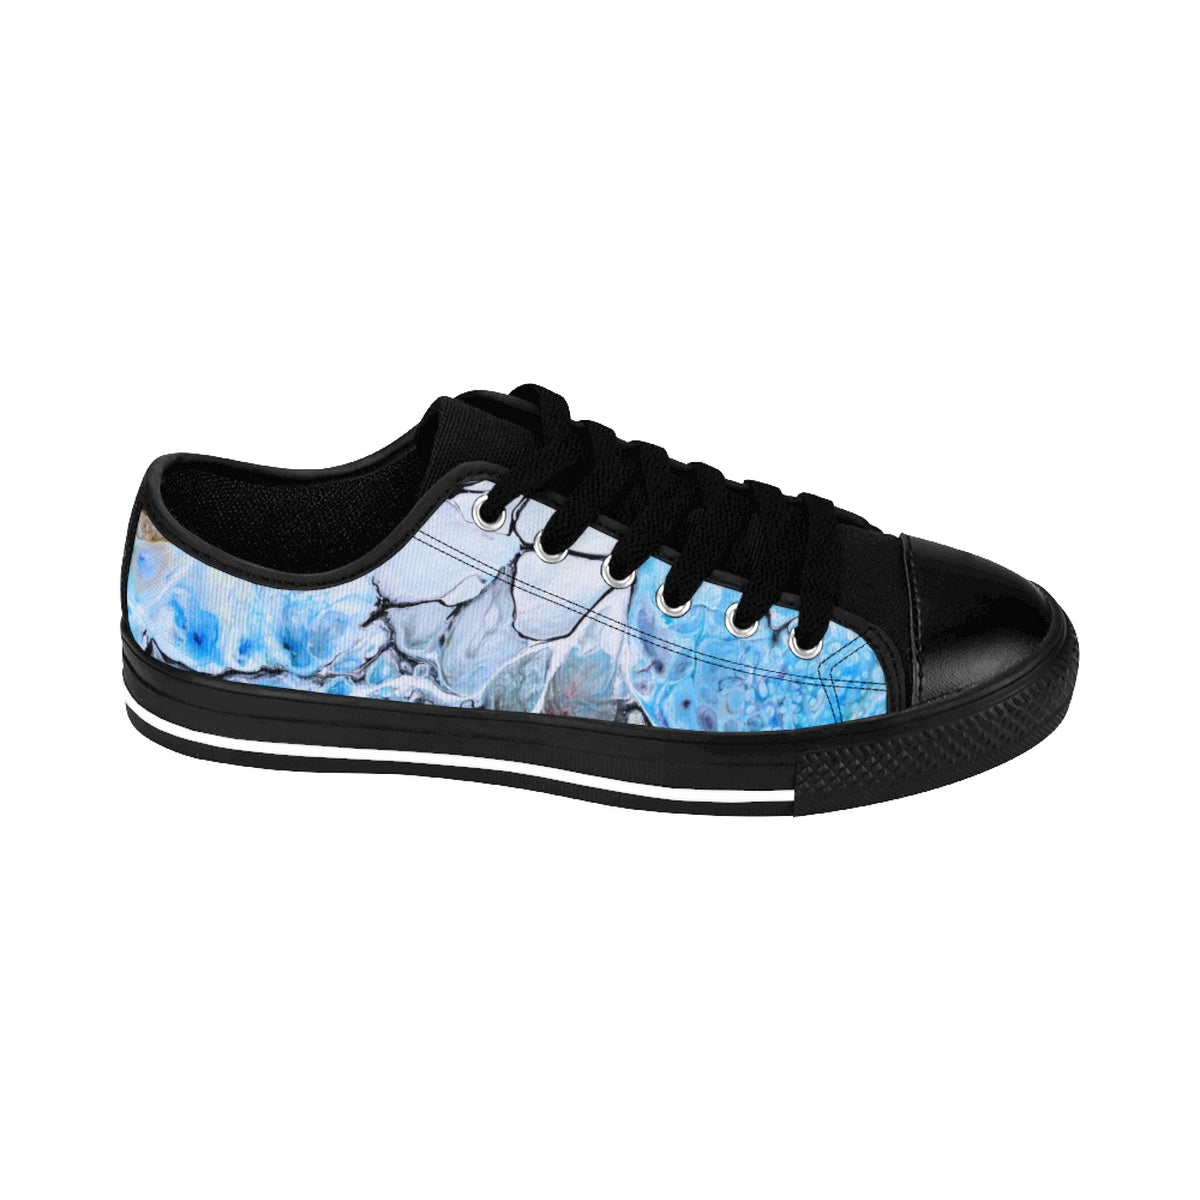 Cracks into Color Women's Sneakers